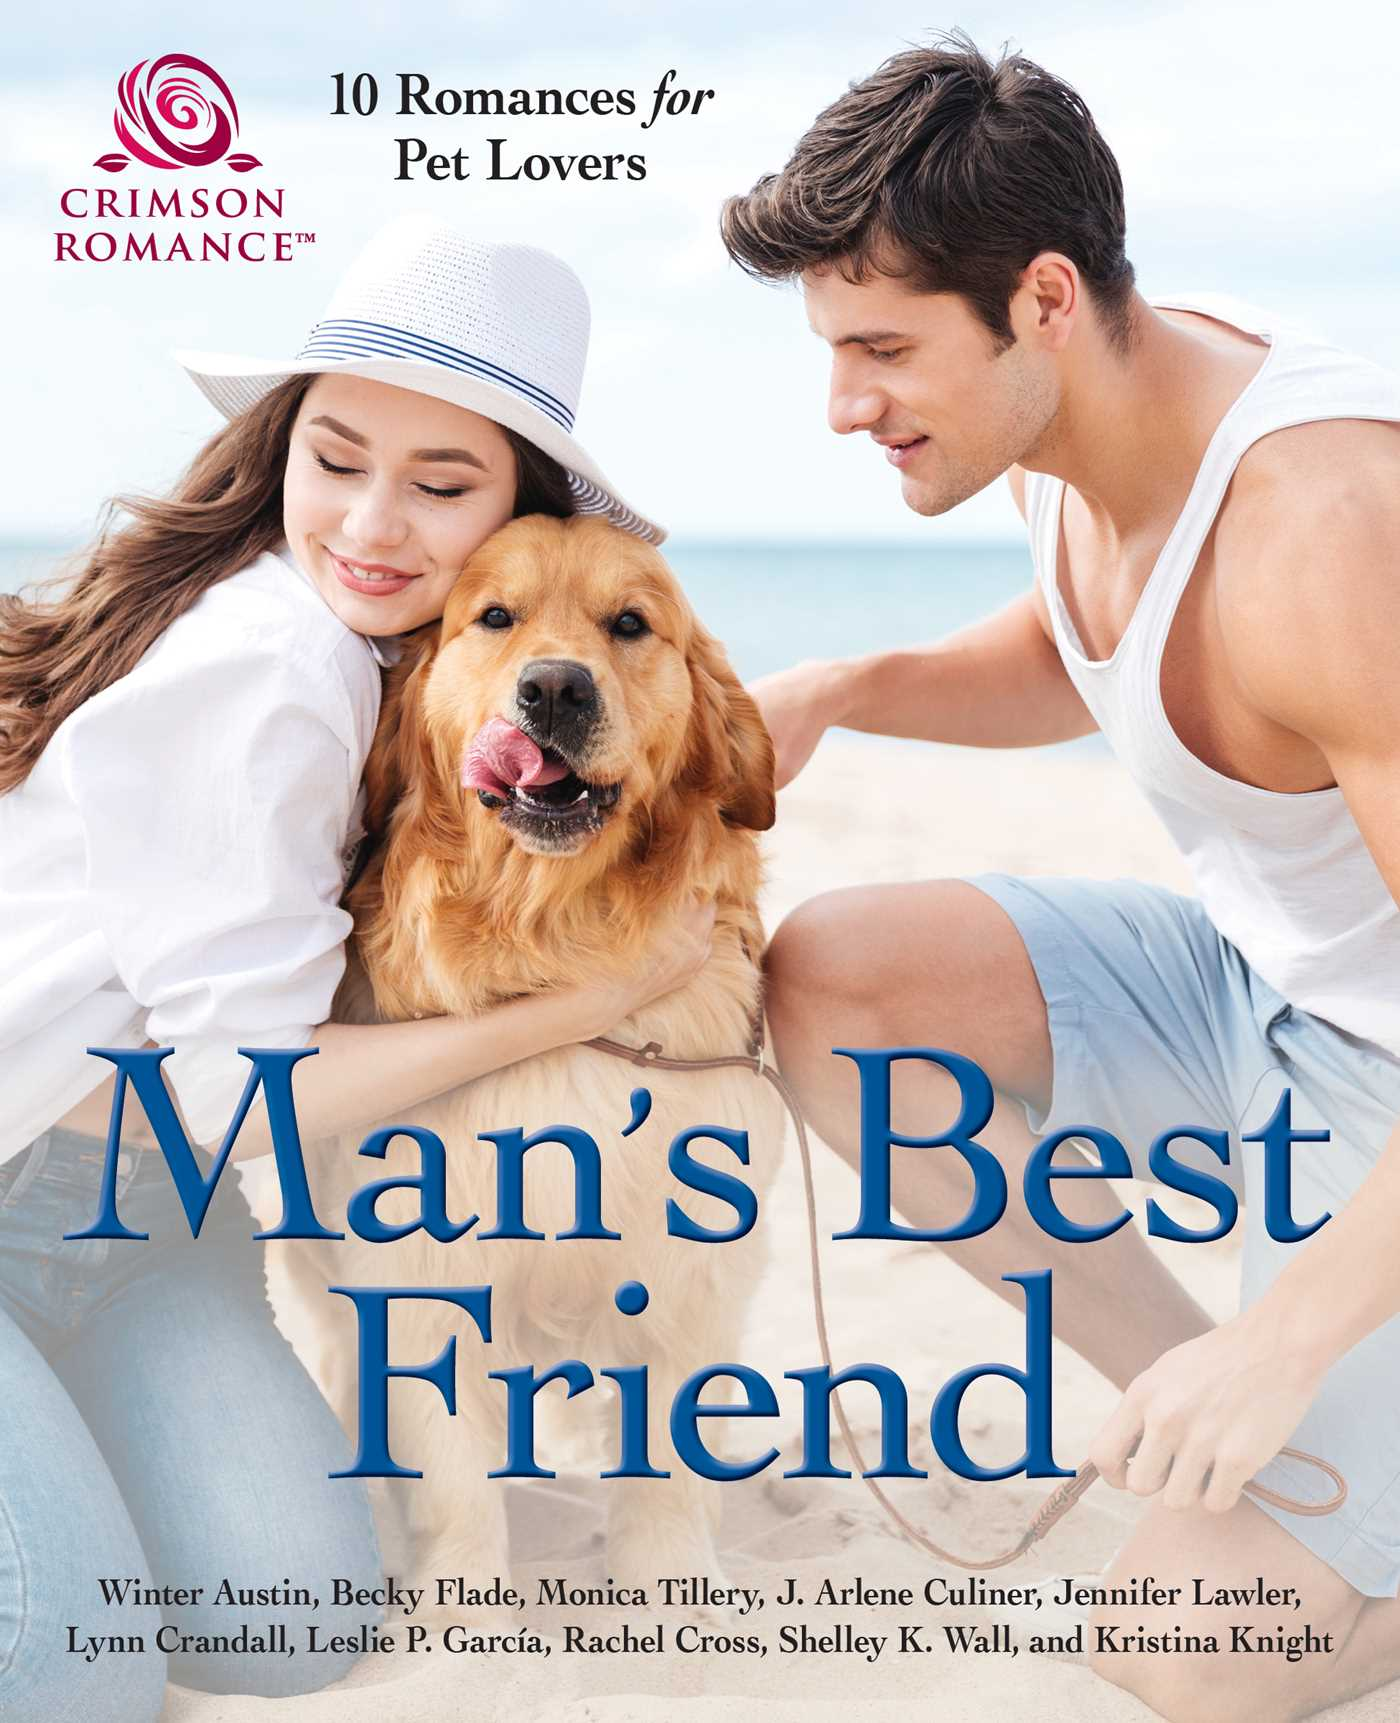 Mans best friend 9781507202005 hr